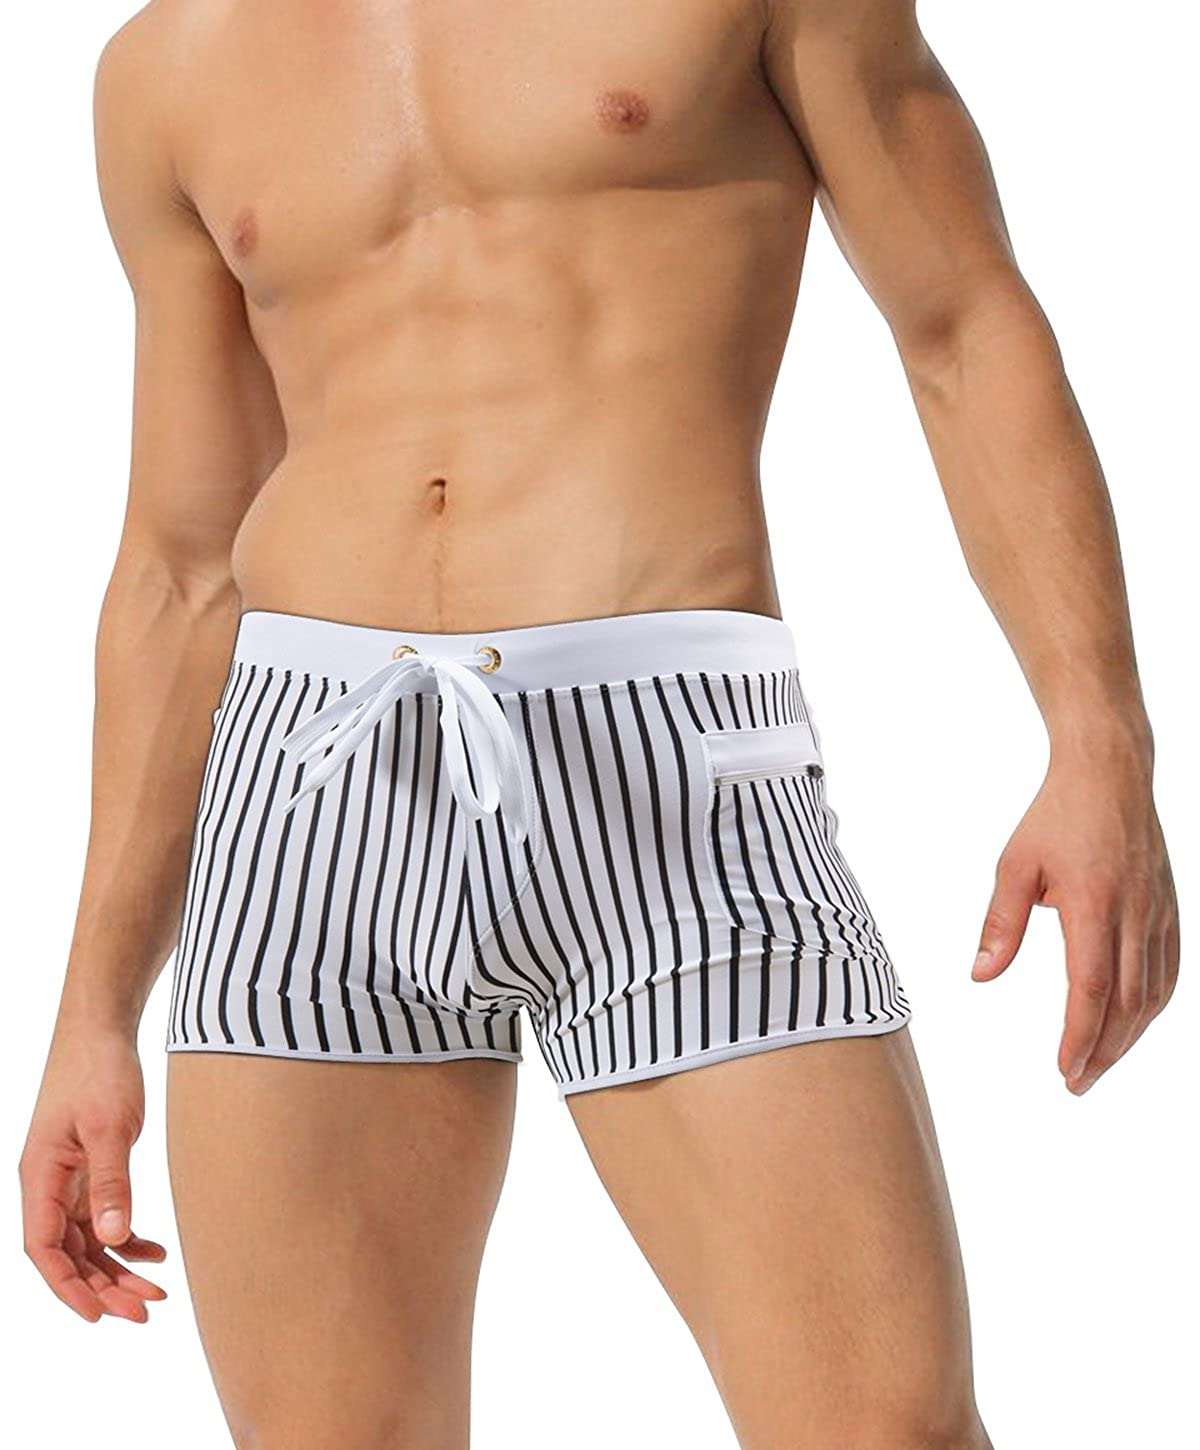 951a1b0ce7 Sexy front pockets zipper men\'s four angle swimming trunks, loose belts  and cord won\'t make you feel bad. Water repellent technology swim briefs,  dries ...